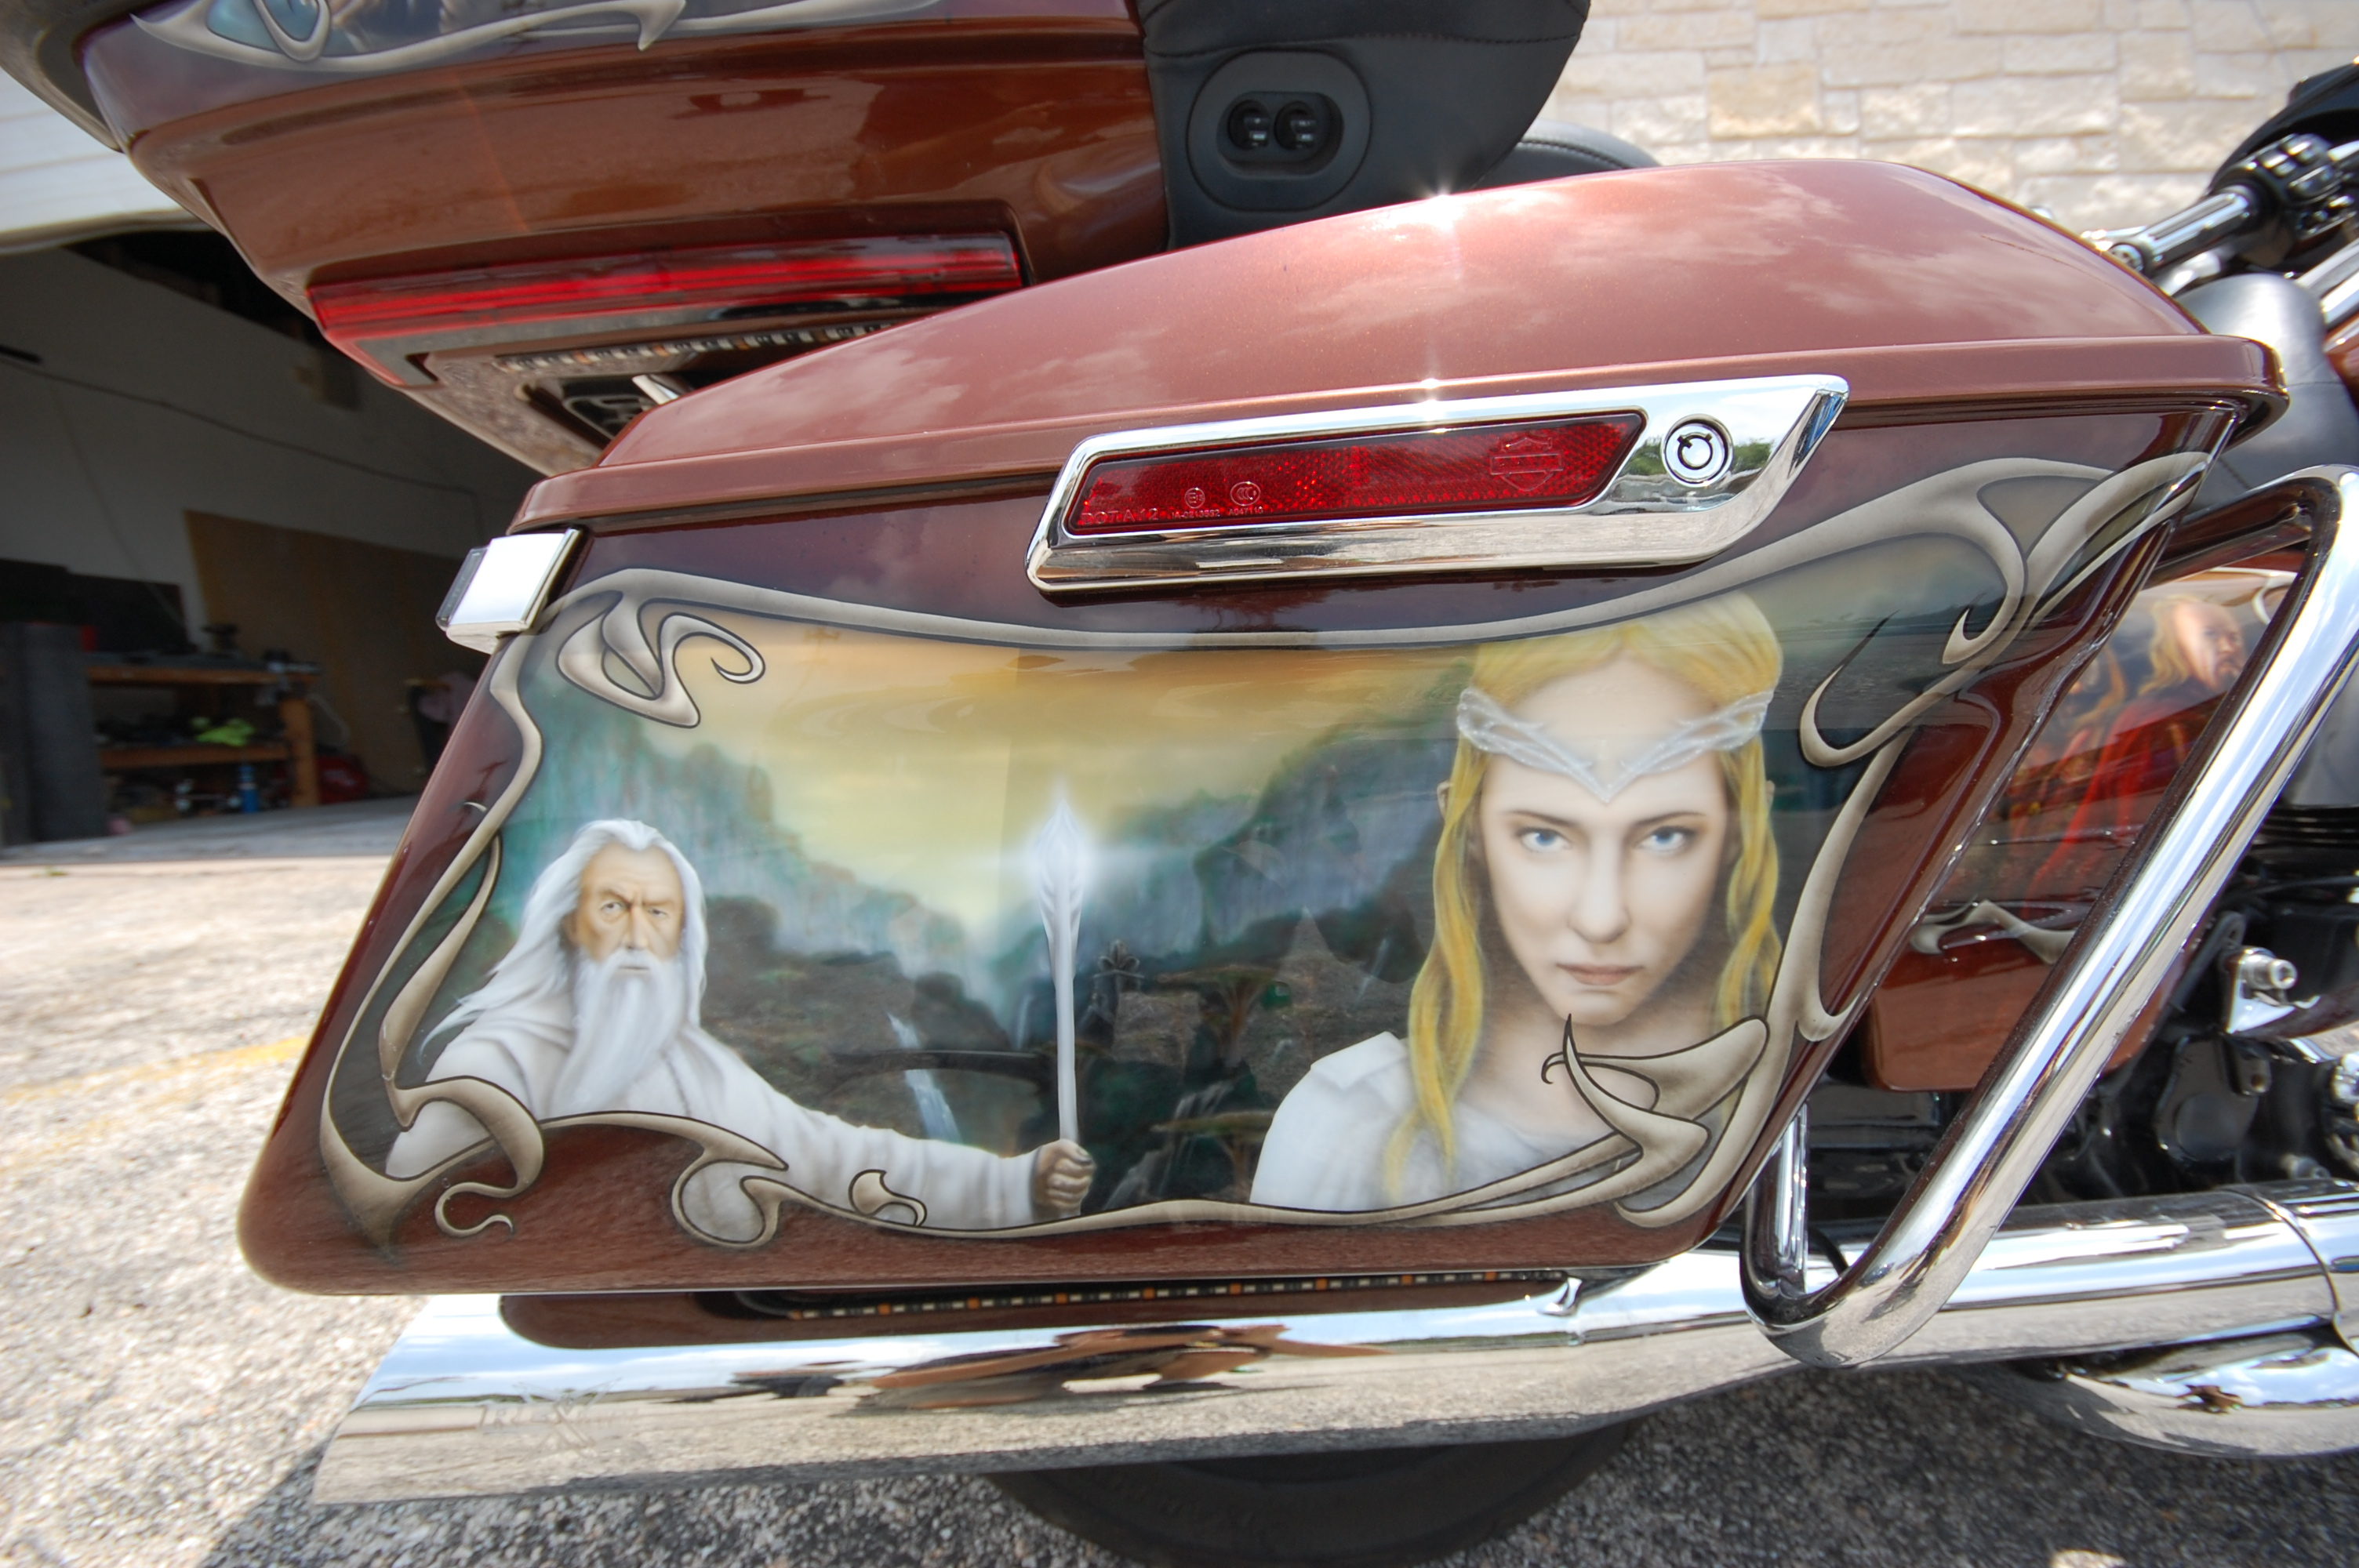 Lord of the Rings Motorcycle-111